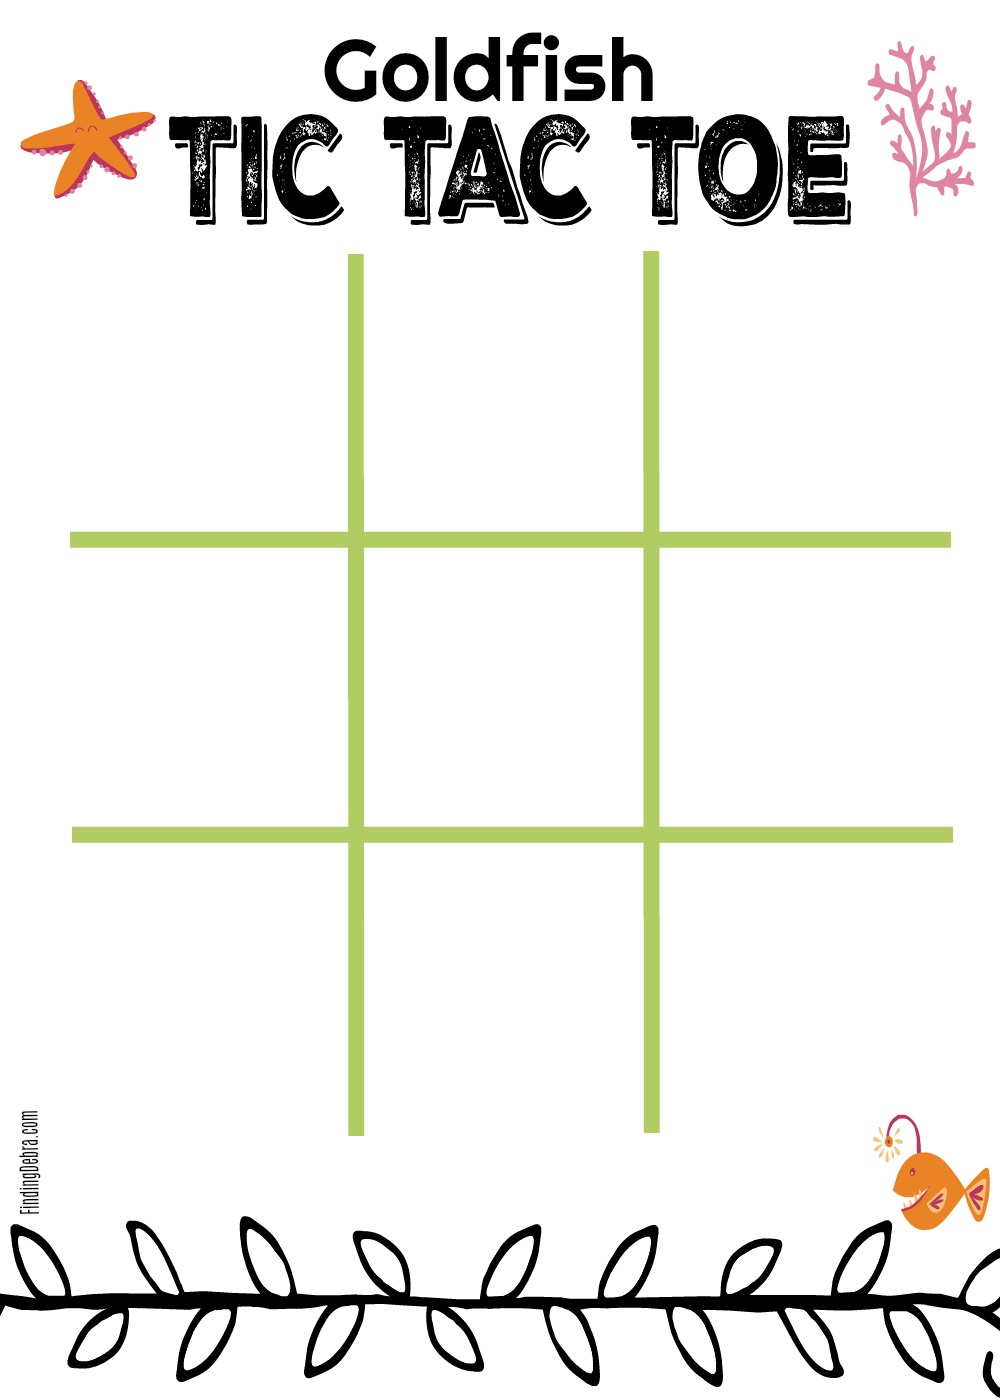 image relating to Tic Tac Toe Printable called Tic Tac Toe Printable for Goldfish Crackers Exciting - Discovering Debra